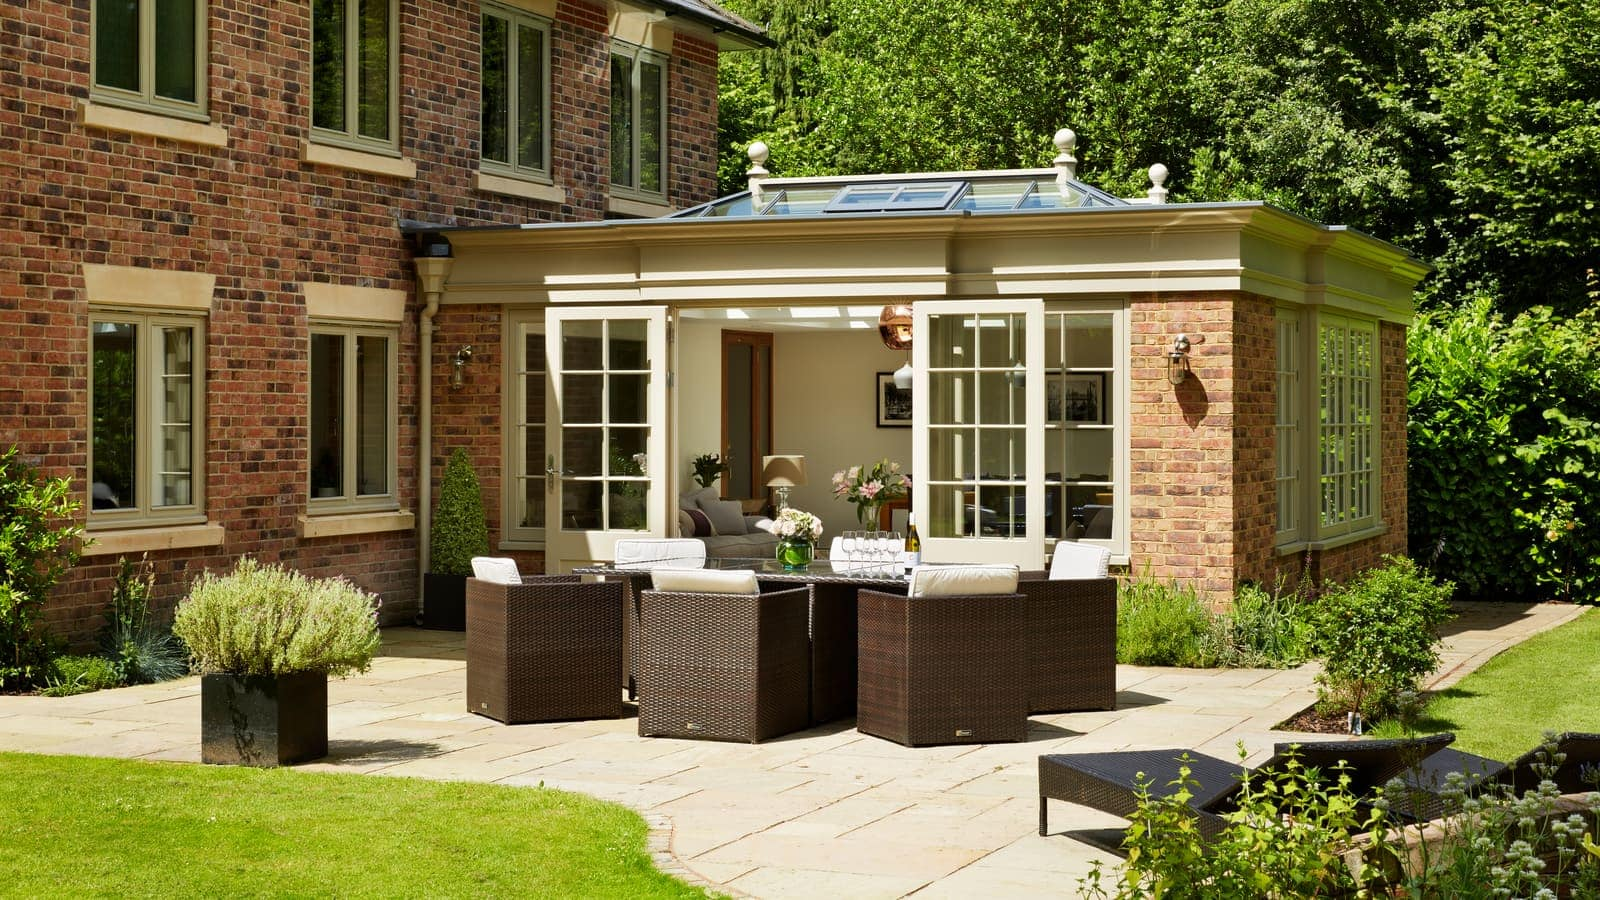 Simple and striking twin lantern orangery